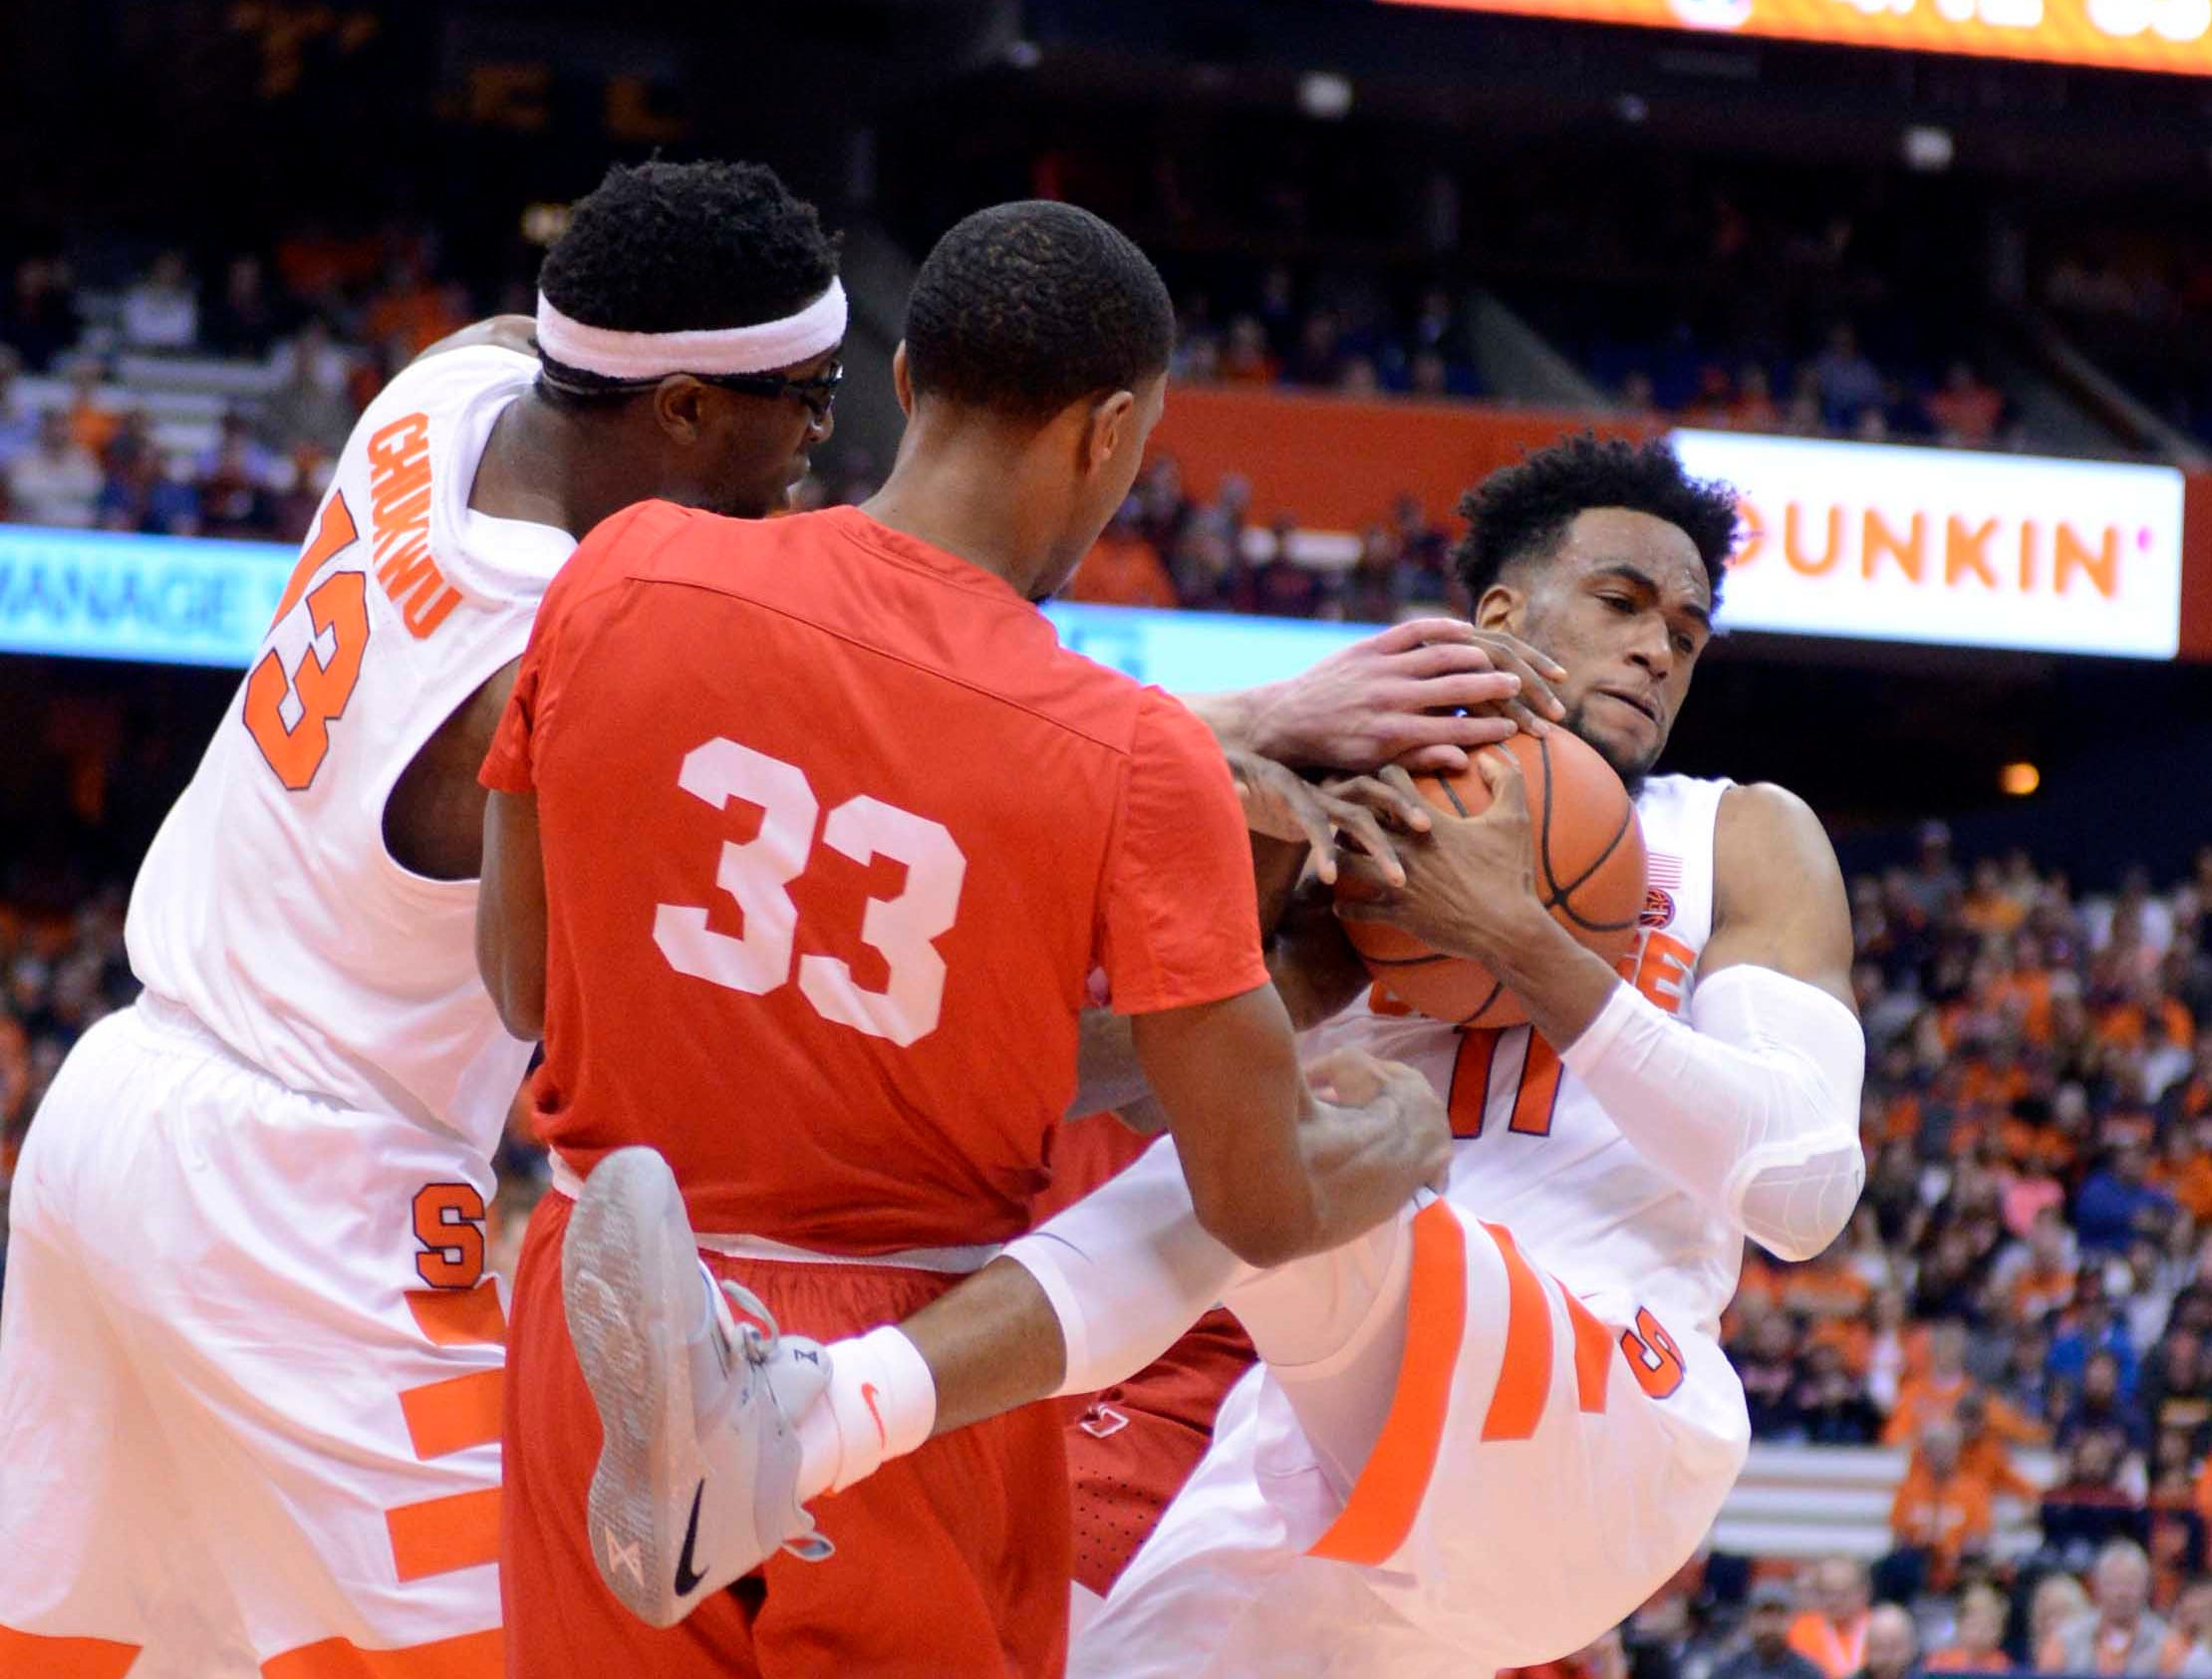 Dec 1, 2018; Syracuse, NY, USA; Syracuse Orange forward Oshae Brissett (11) grabs a rebound over Cornell Big Red forward Steven Julian (33) during the second half at the Carrier Dome. Mandatory Credit: Mark Konezny-USA TODAY Sports